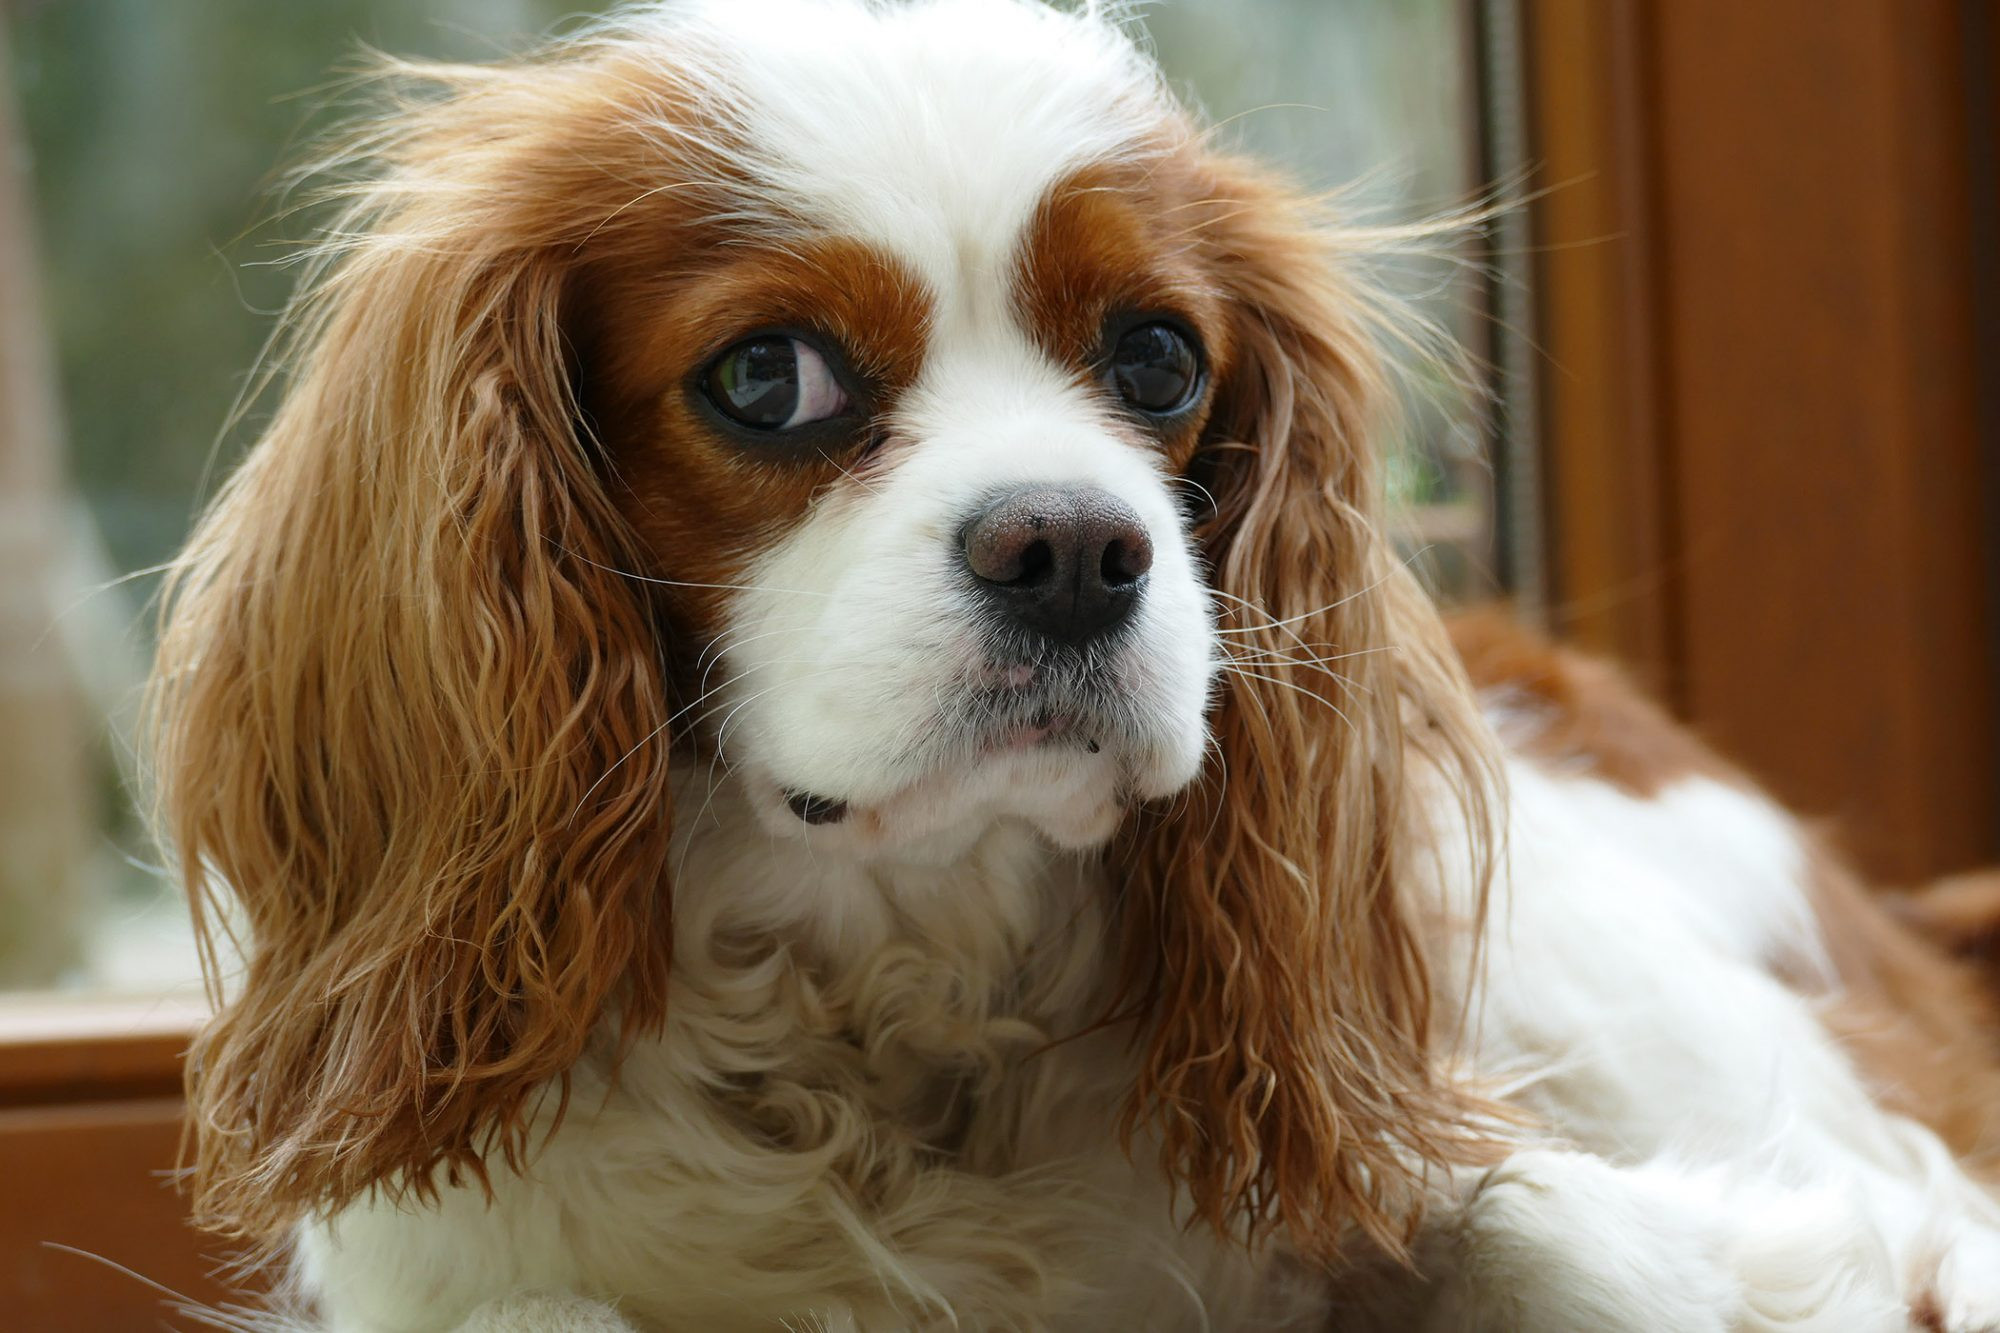 tan-and-white cavalier king charles spaniel closeup